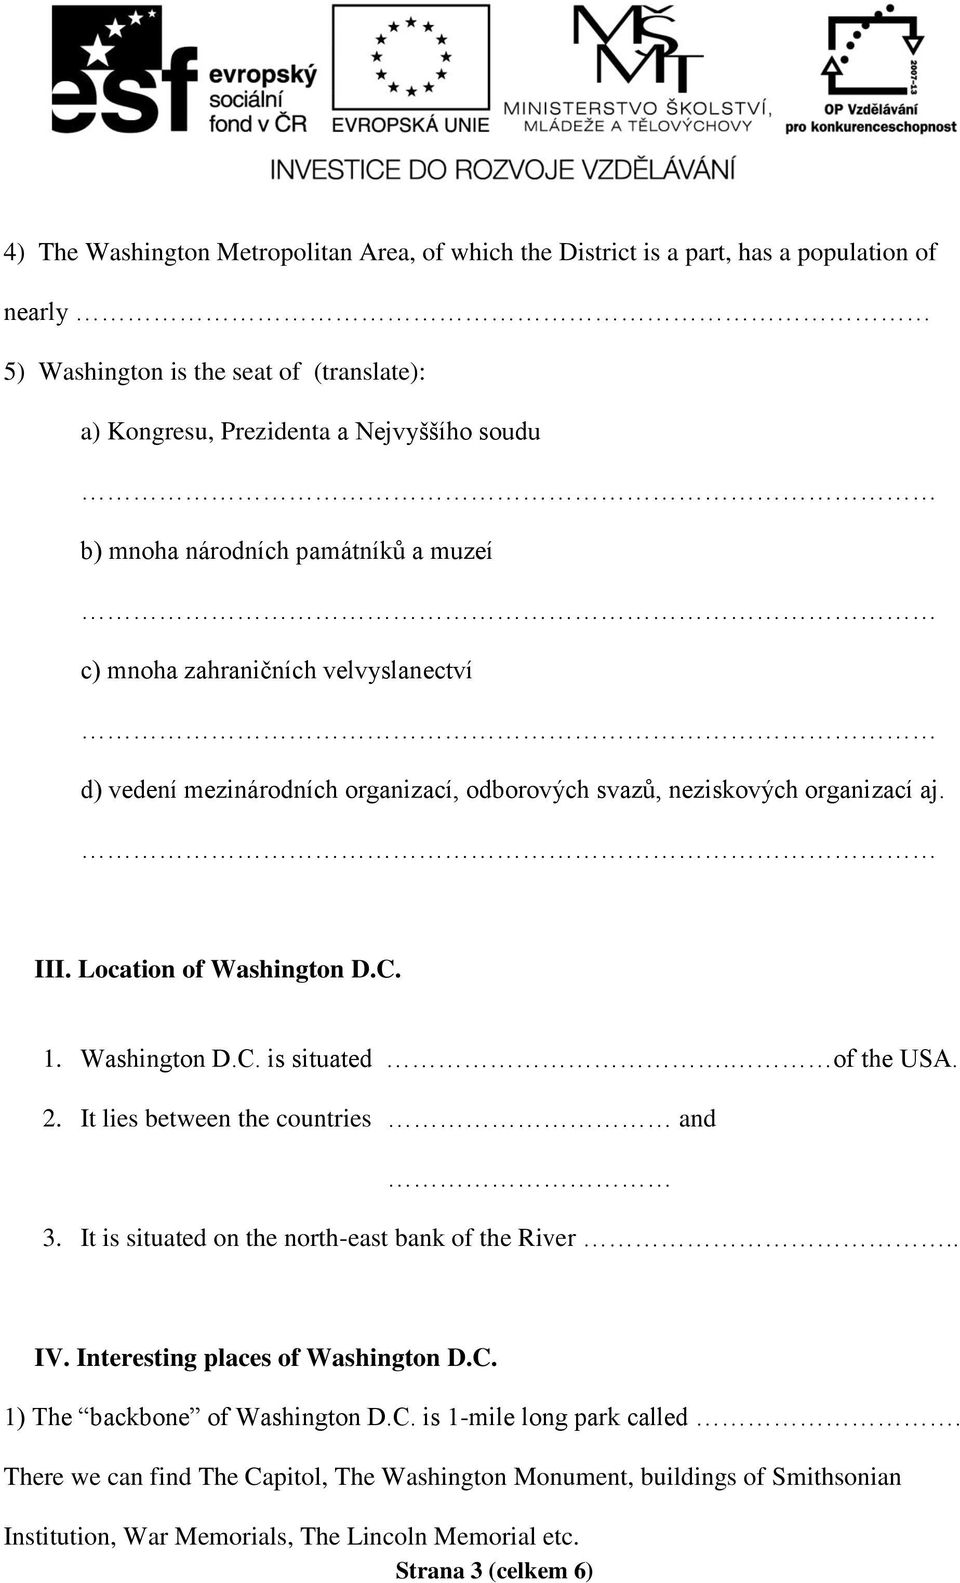 Washington D.C. is situated. of the USA. 2. It lies between the countries and 3. It is situated on the north-east bank of the River.. IV. Interesting places of Washington D.C. 1) The backbone of Washington D.